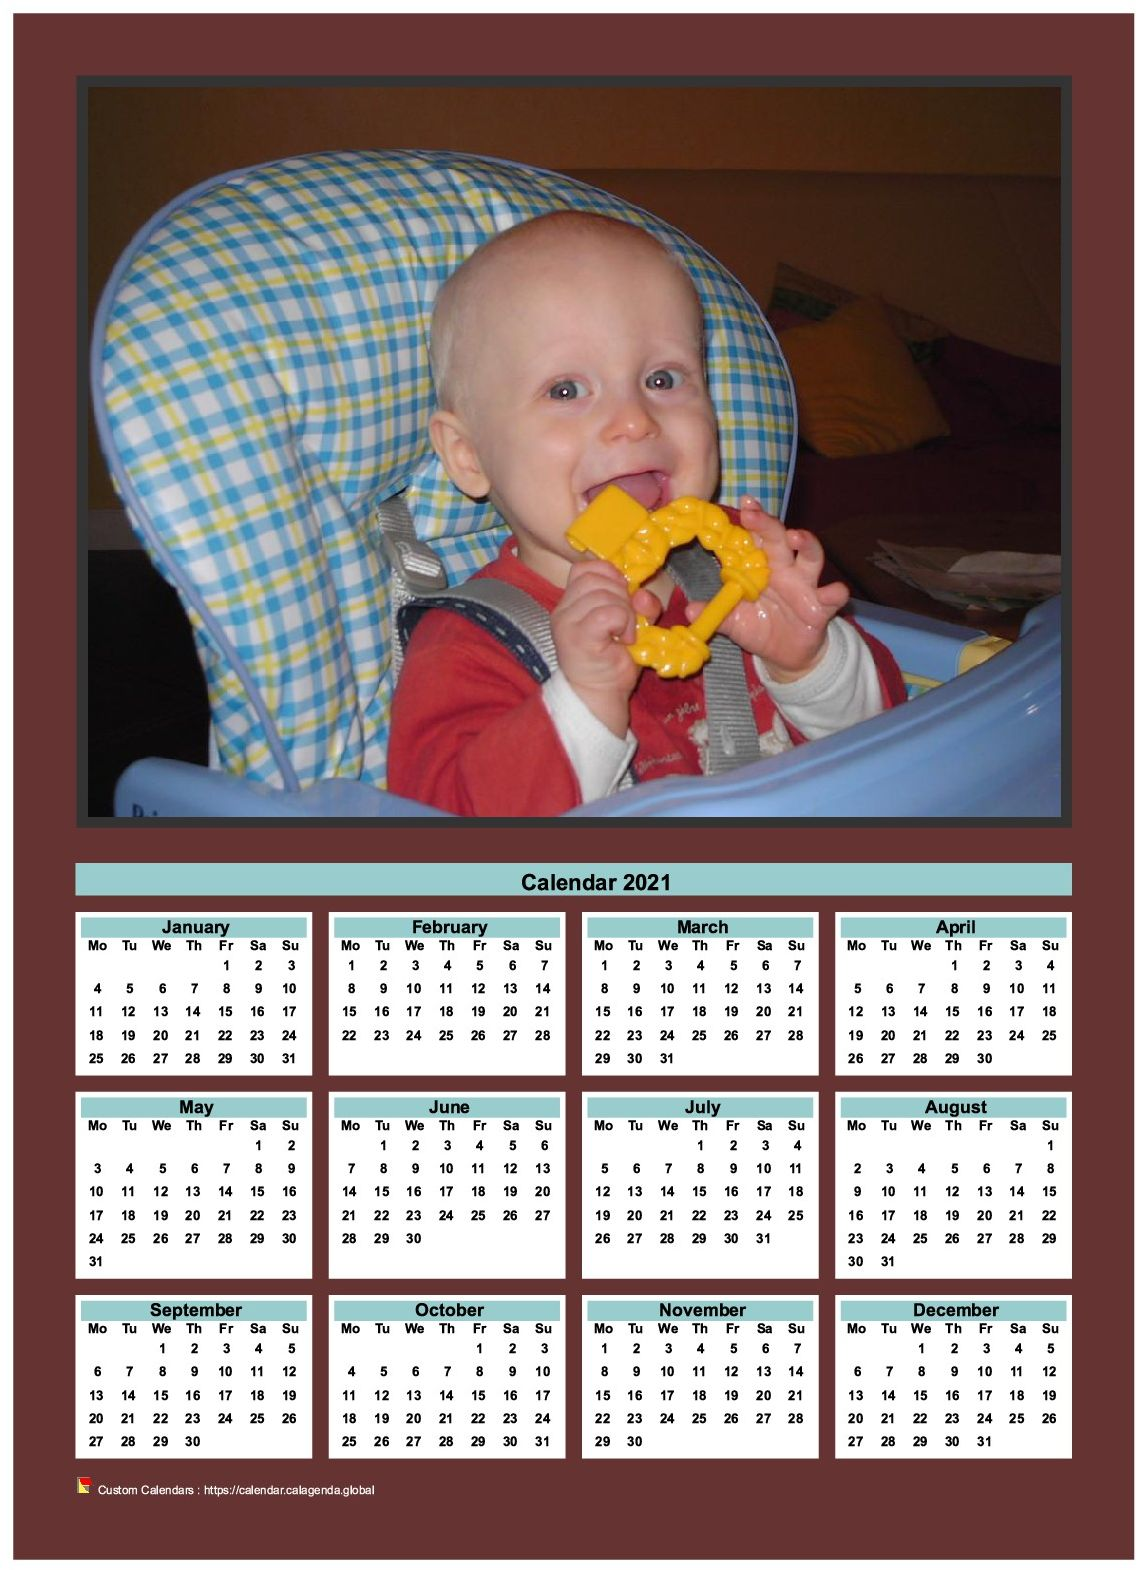 Calendar 2021 annual to print with family photo